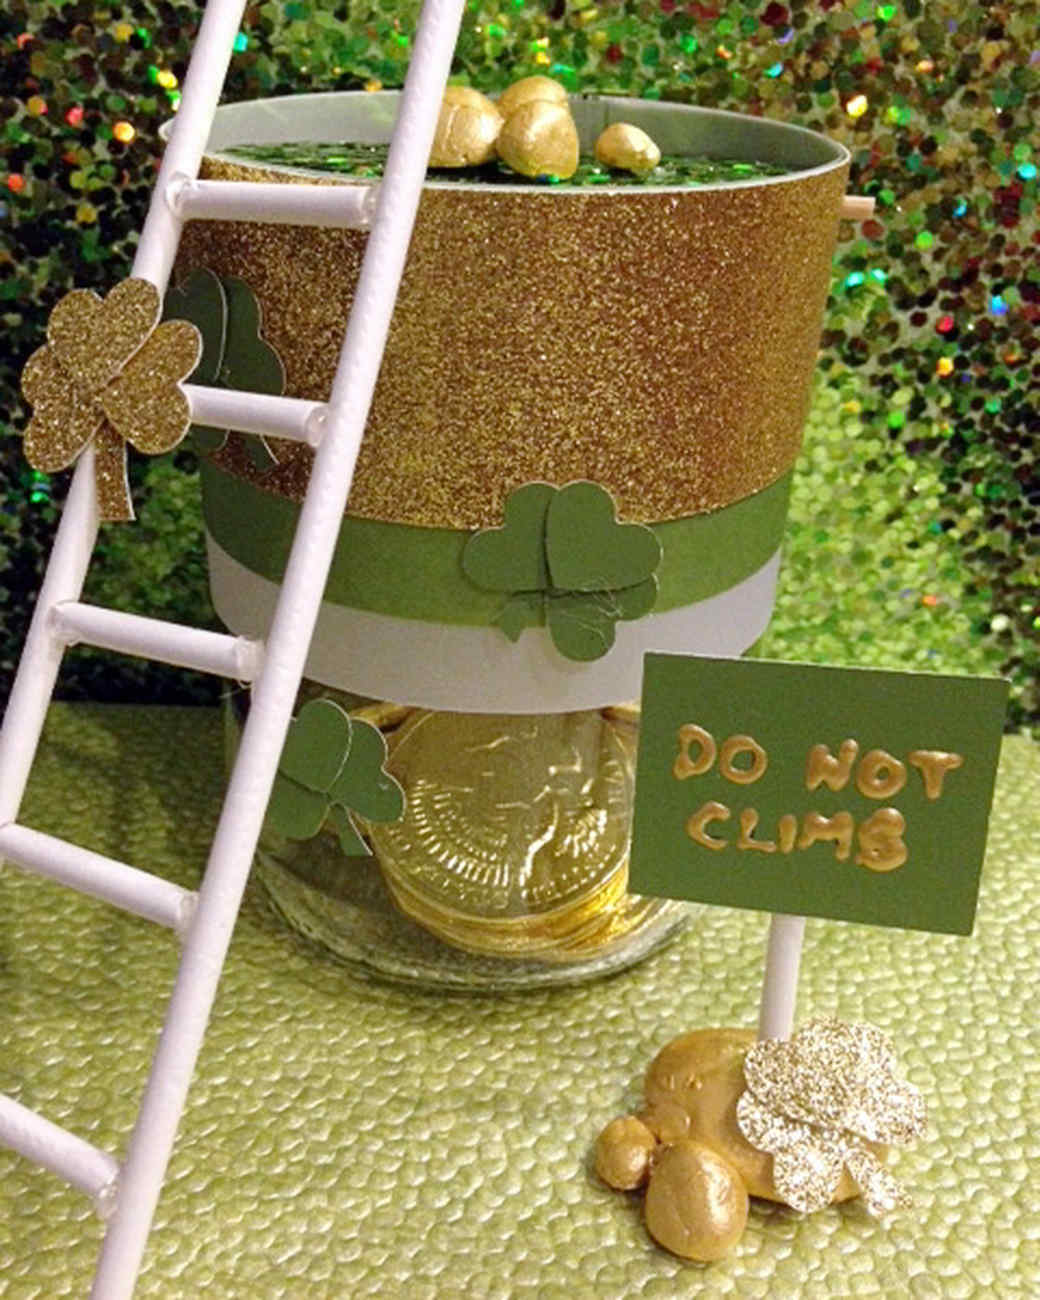 leprechauntraps-ugc-polly-welch-0314.jpg